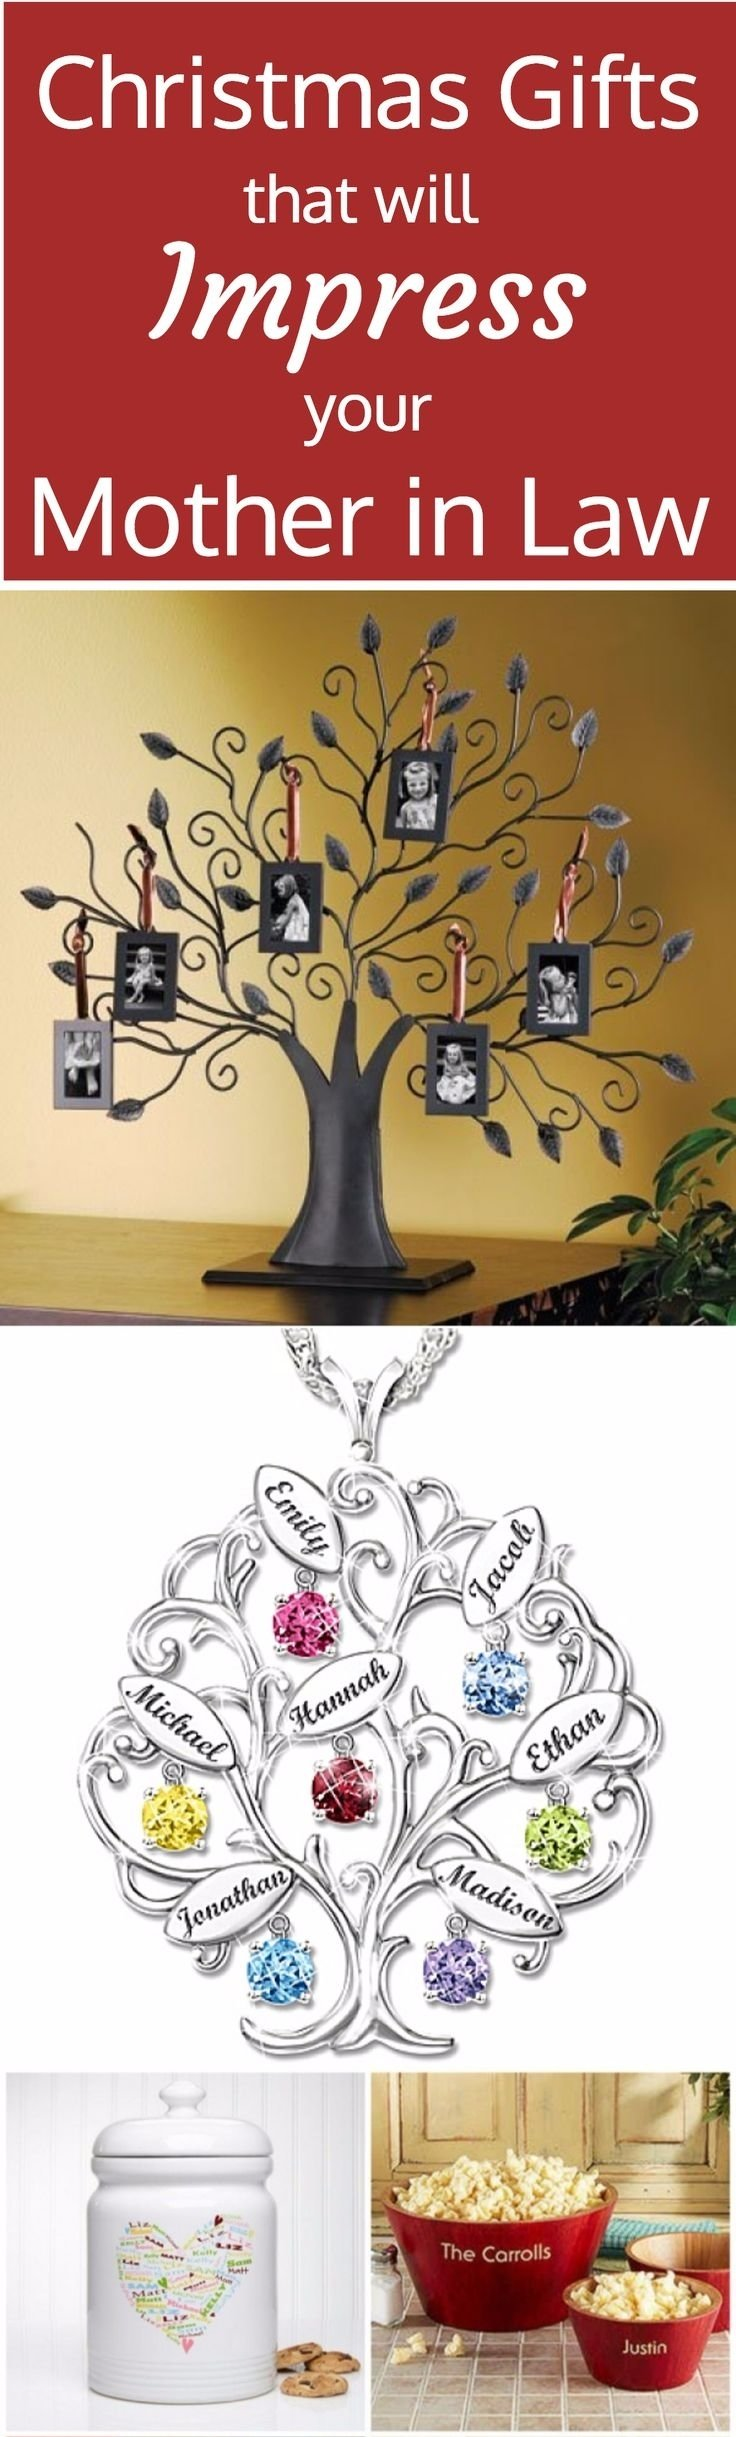 10 Ideal Christmas Gift Ideas For Mother In Law 347 best what to get your mother in law for christmas images on 3